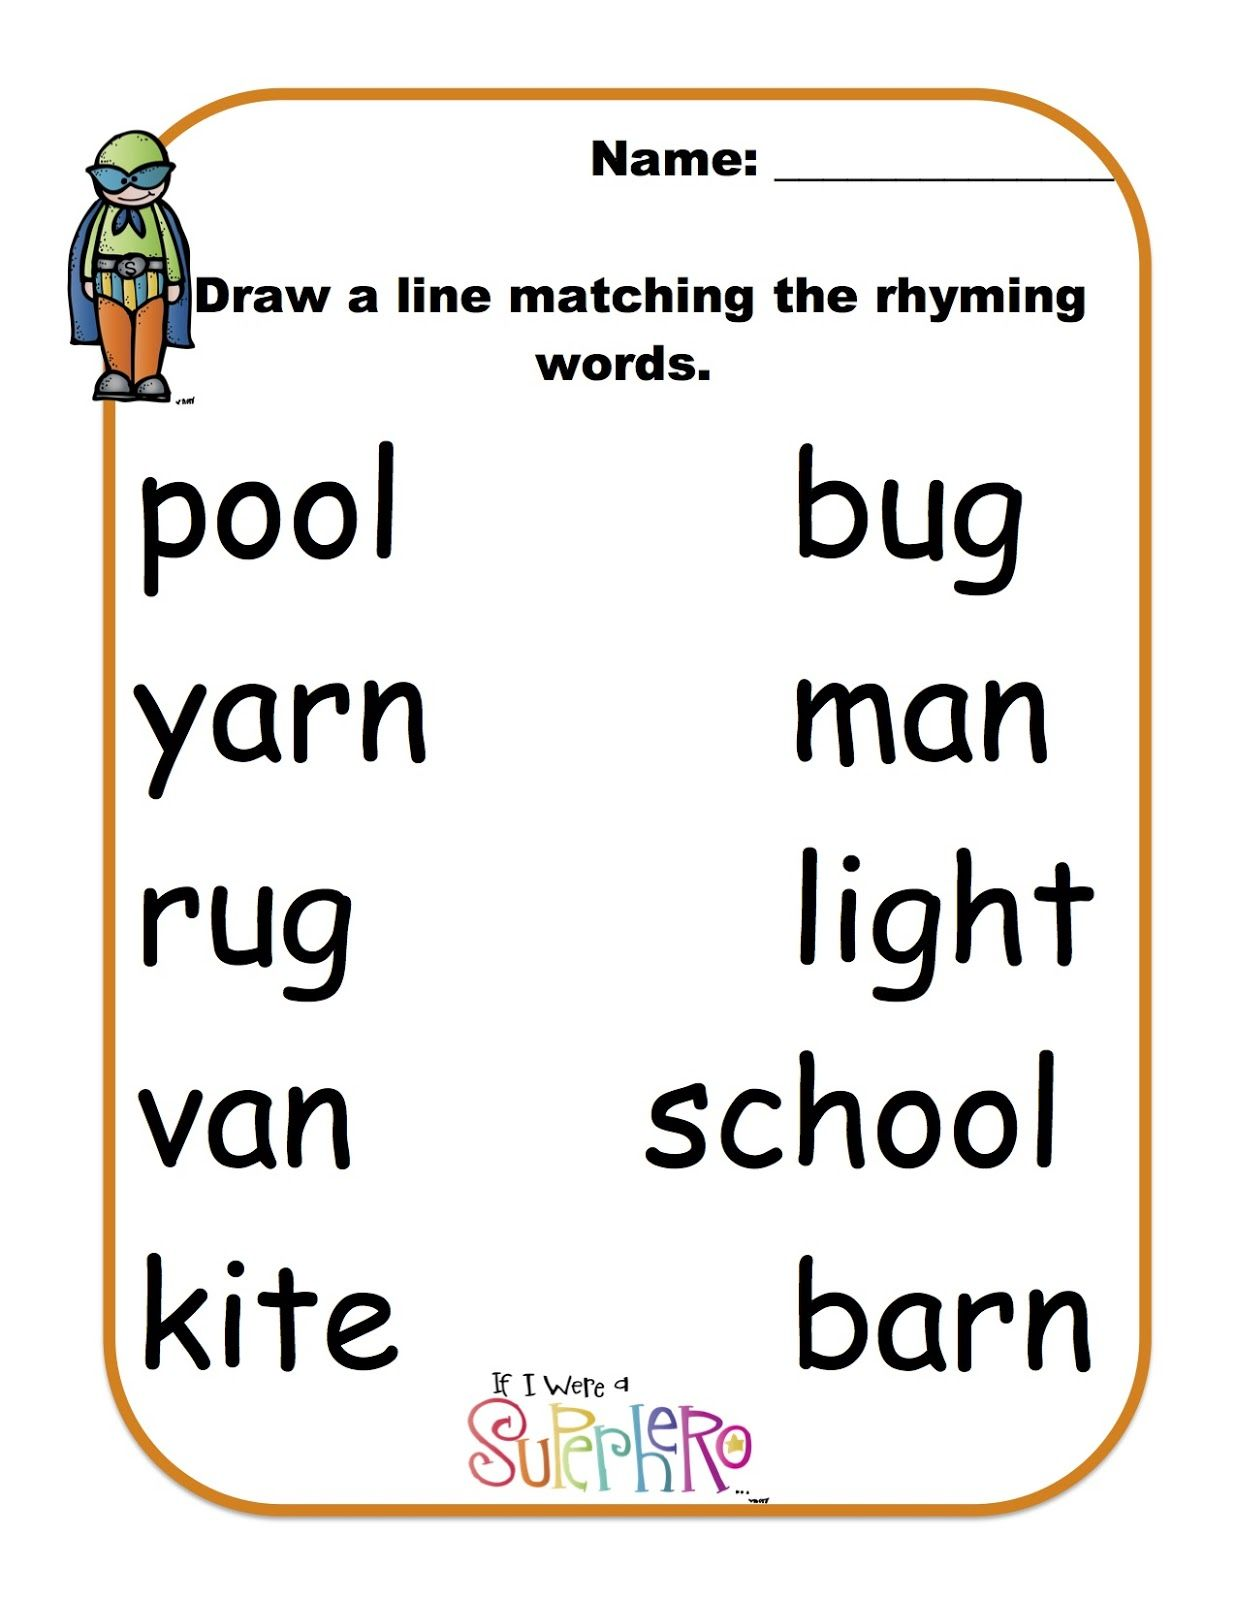 Worksheet Rhythming Words 17 best images about rhyming words on pinterest dr seuss activity games and literacy